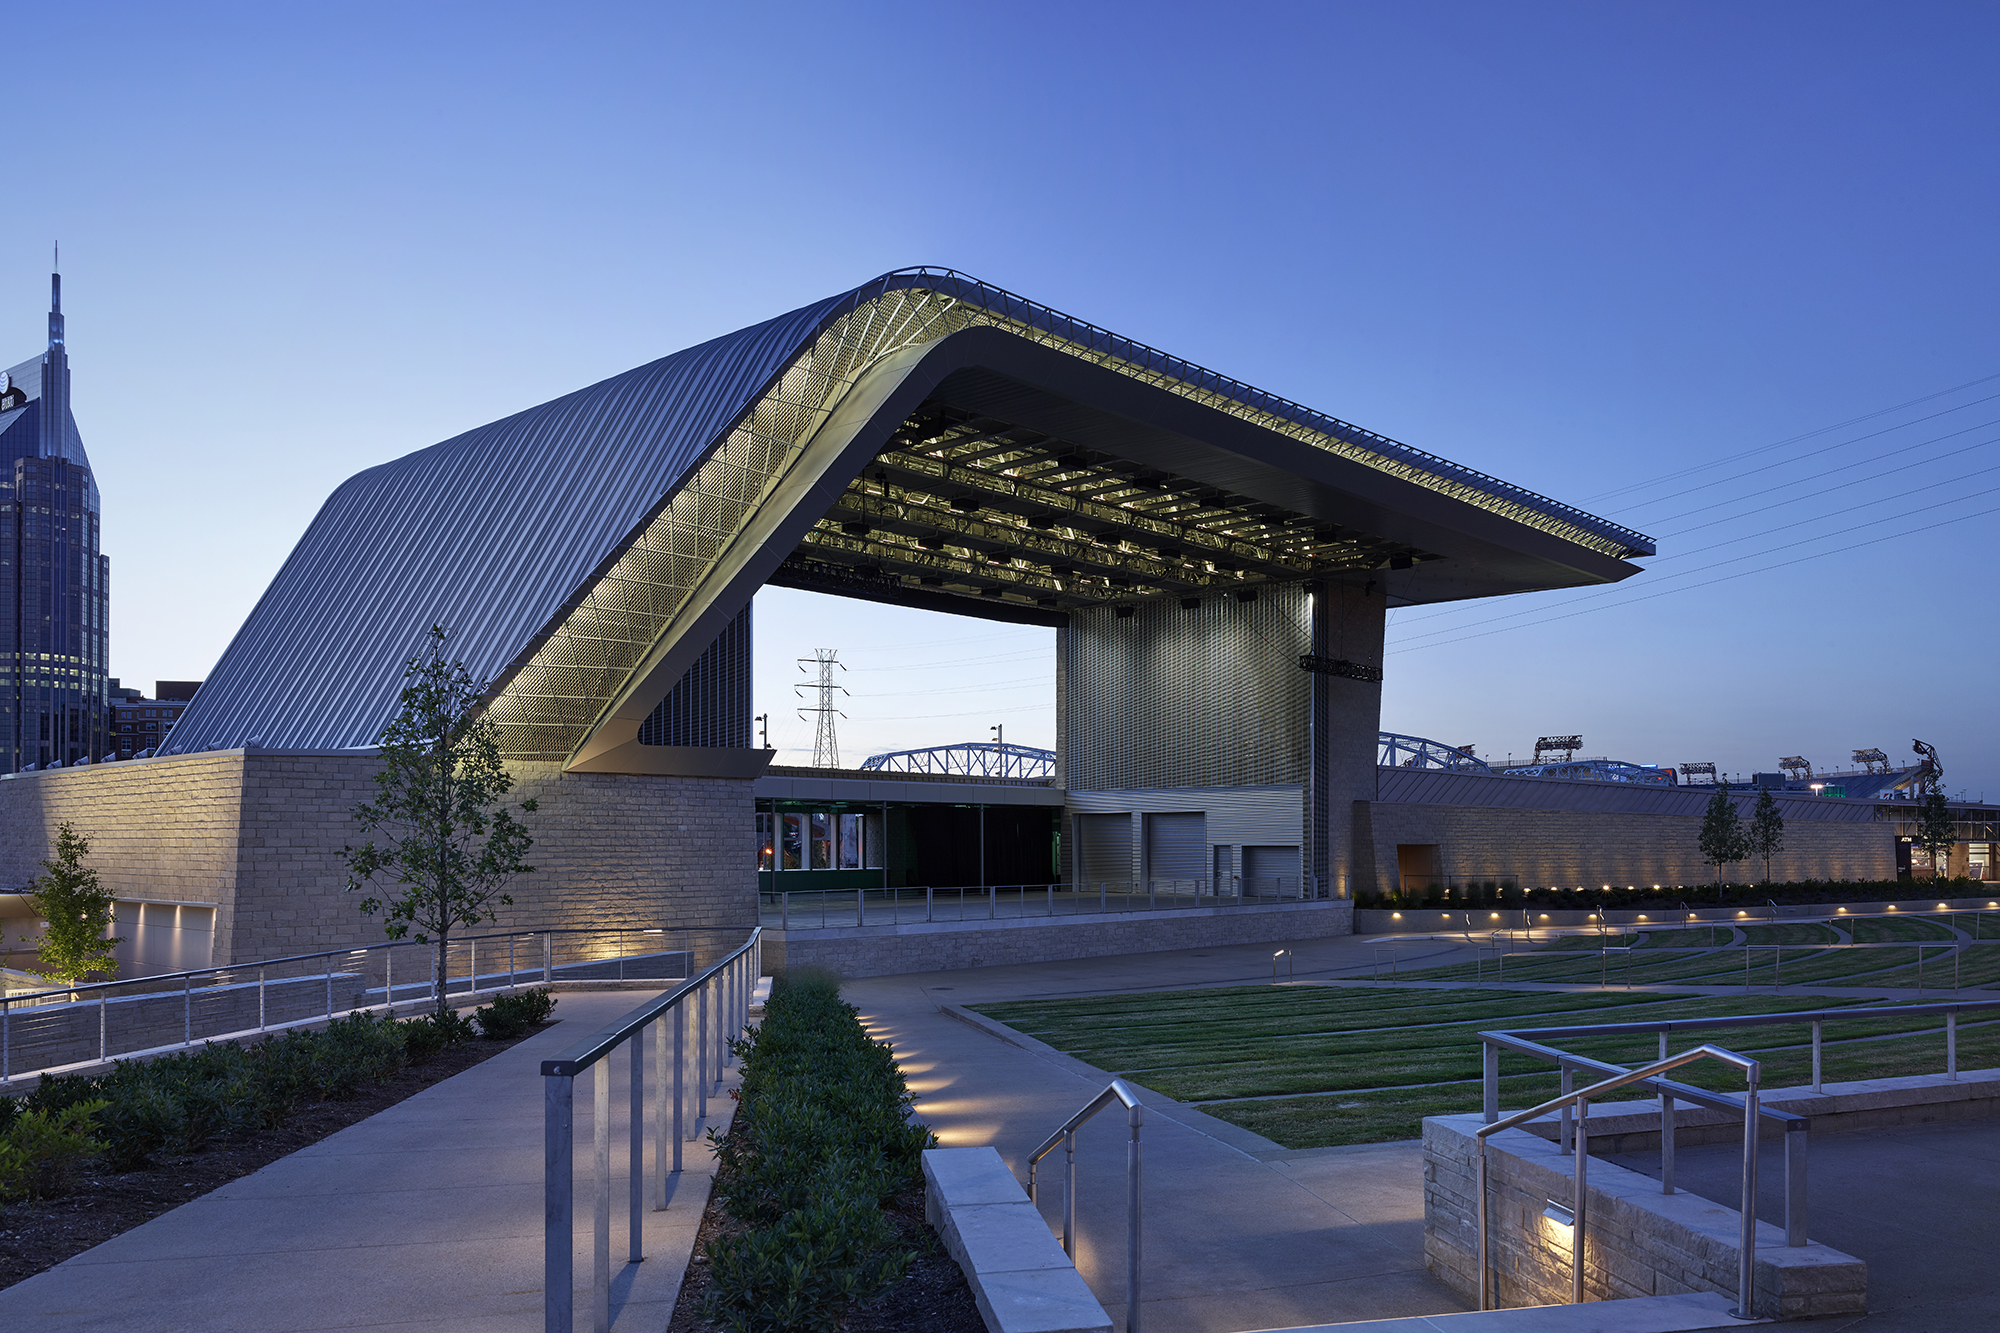 Riverfront park ascend amphitheater architect magazine for Construction architect